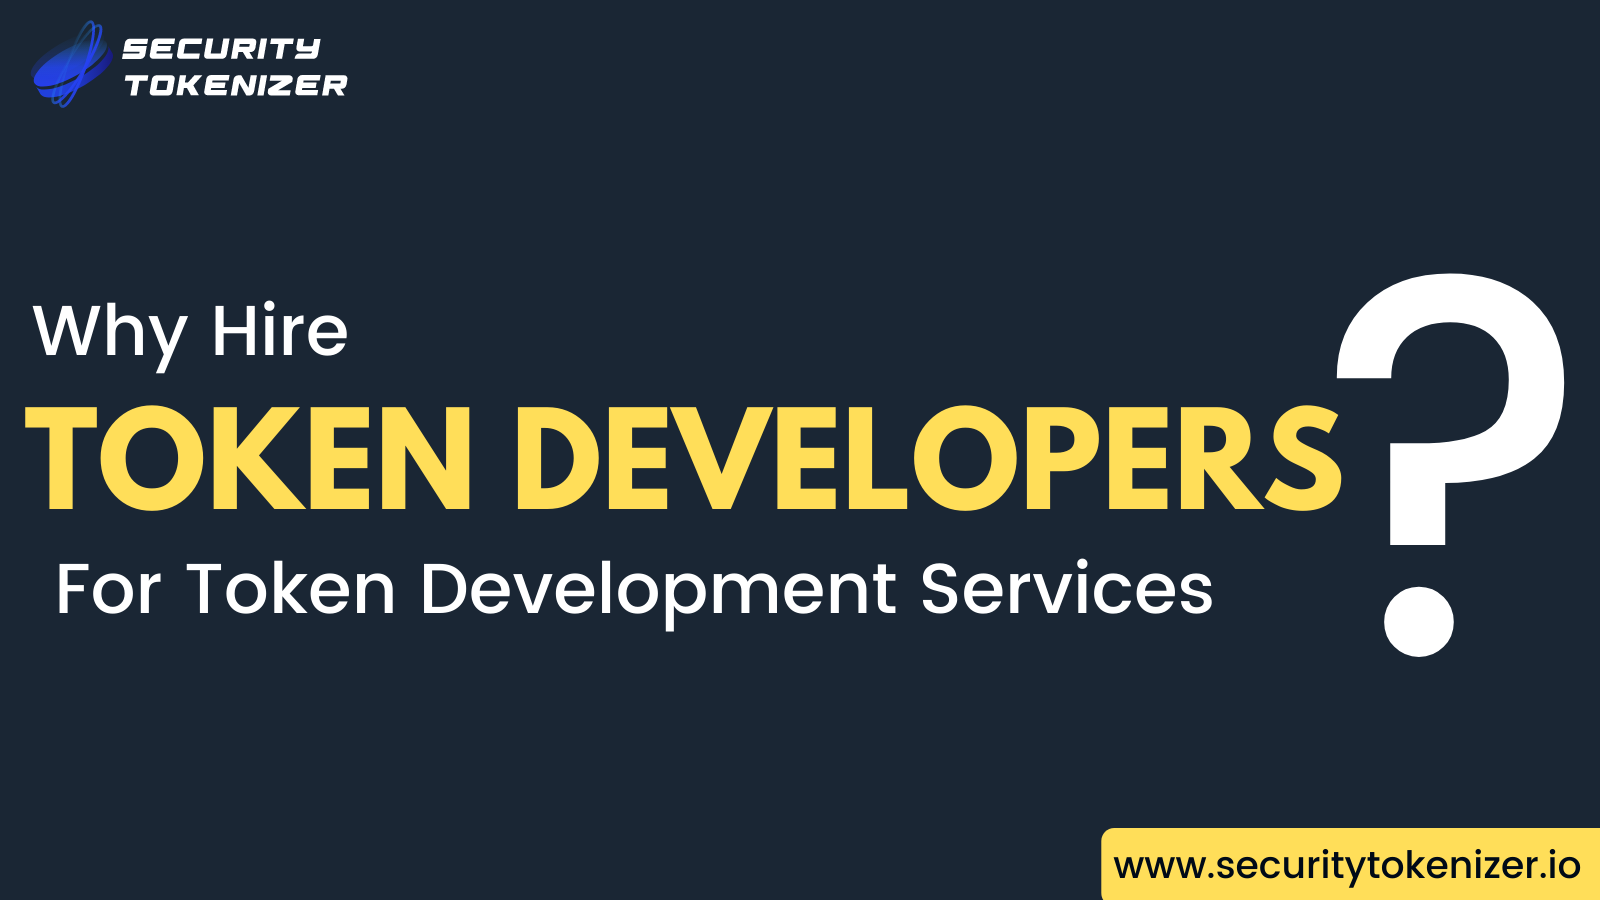 Why Hire Token Developers For Token Development Services?